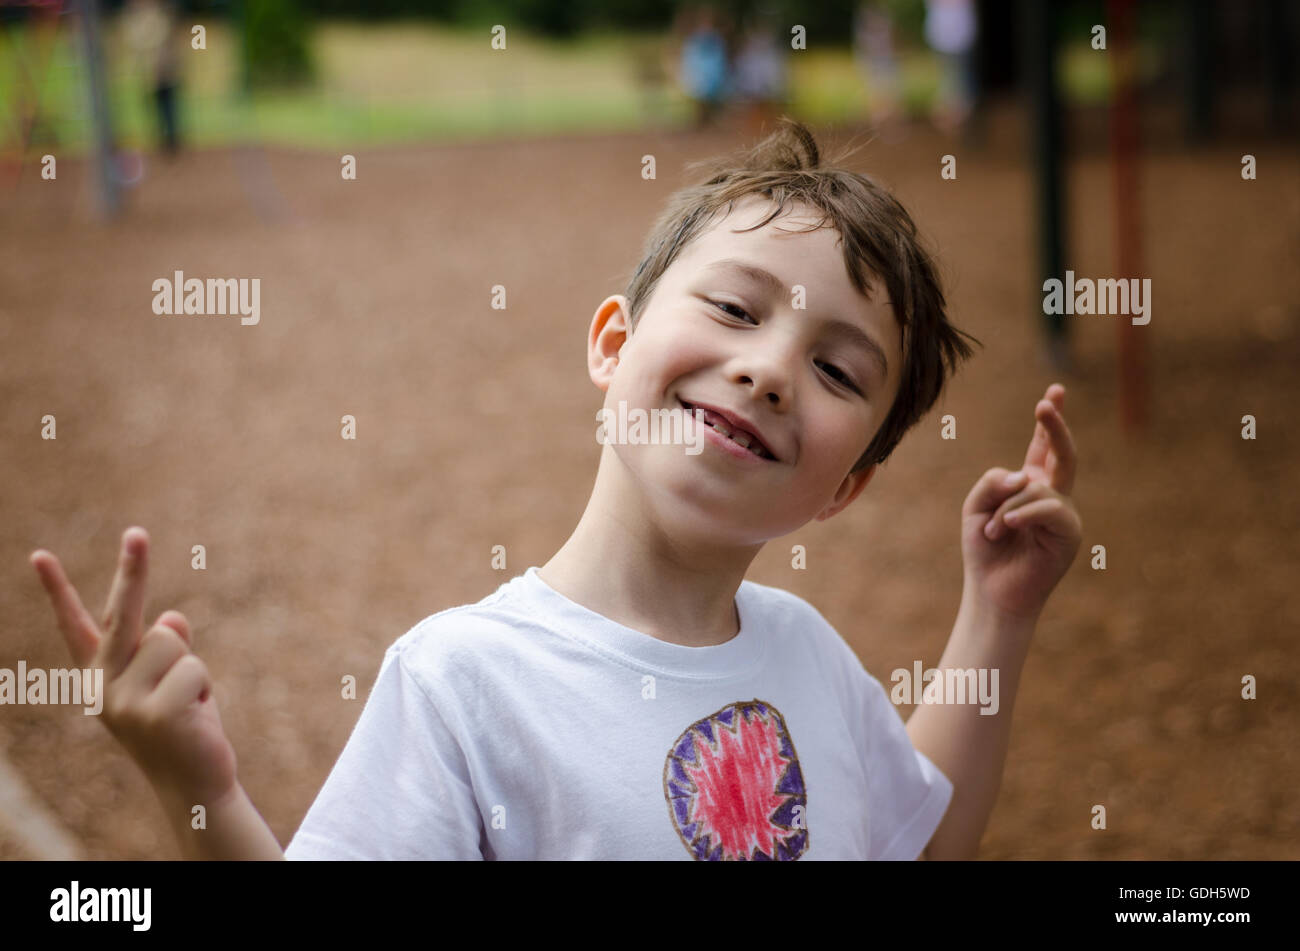 a-young-boy-poses-for-a-portrait-in-the-park-GDH5WD.jpg